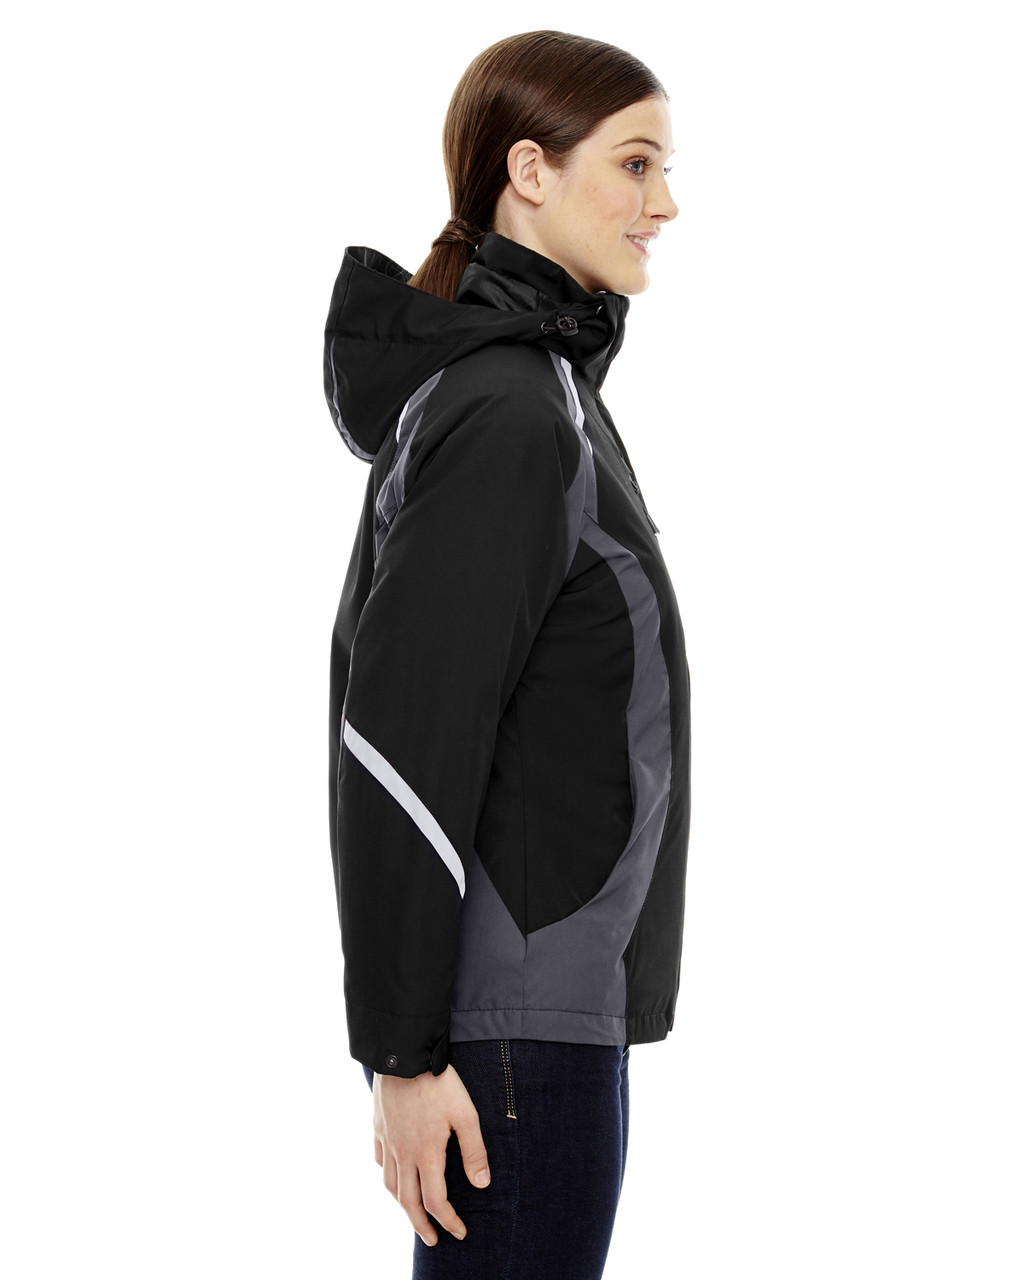 Black, Side - 78195 Ash City - North End Ladies' Height 3-in-1 Jacket with Insulated Liner | Blankclothing.ca